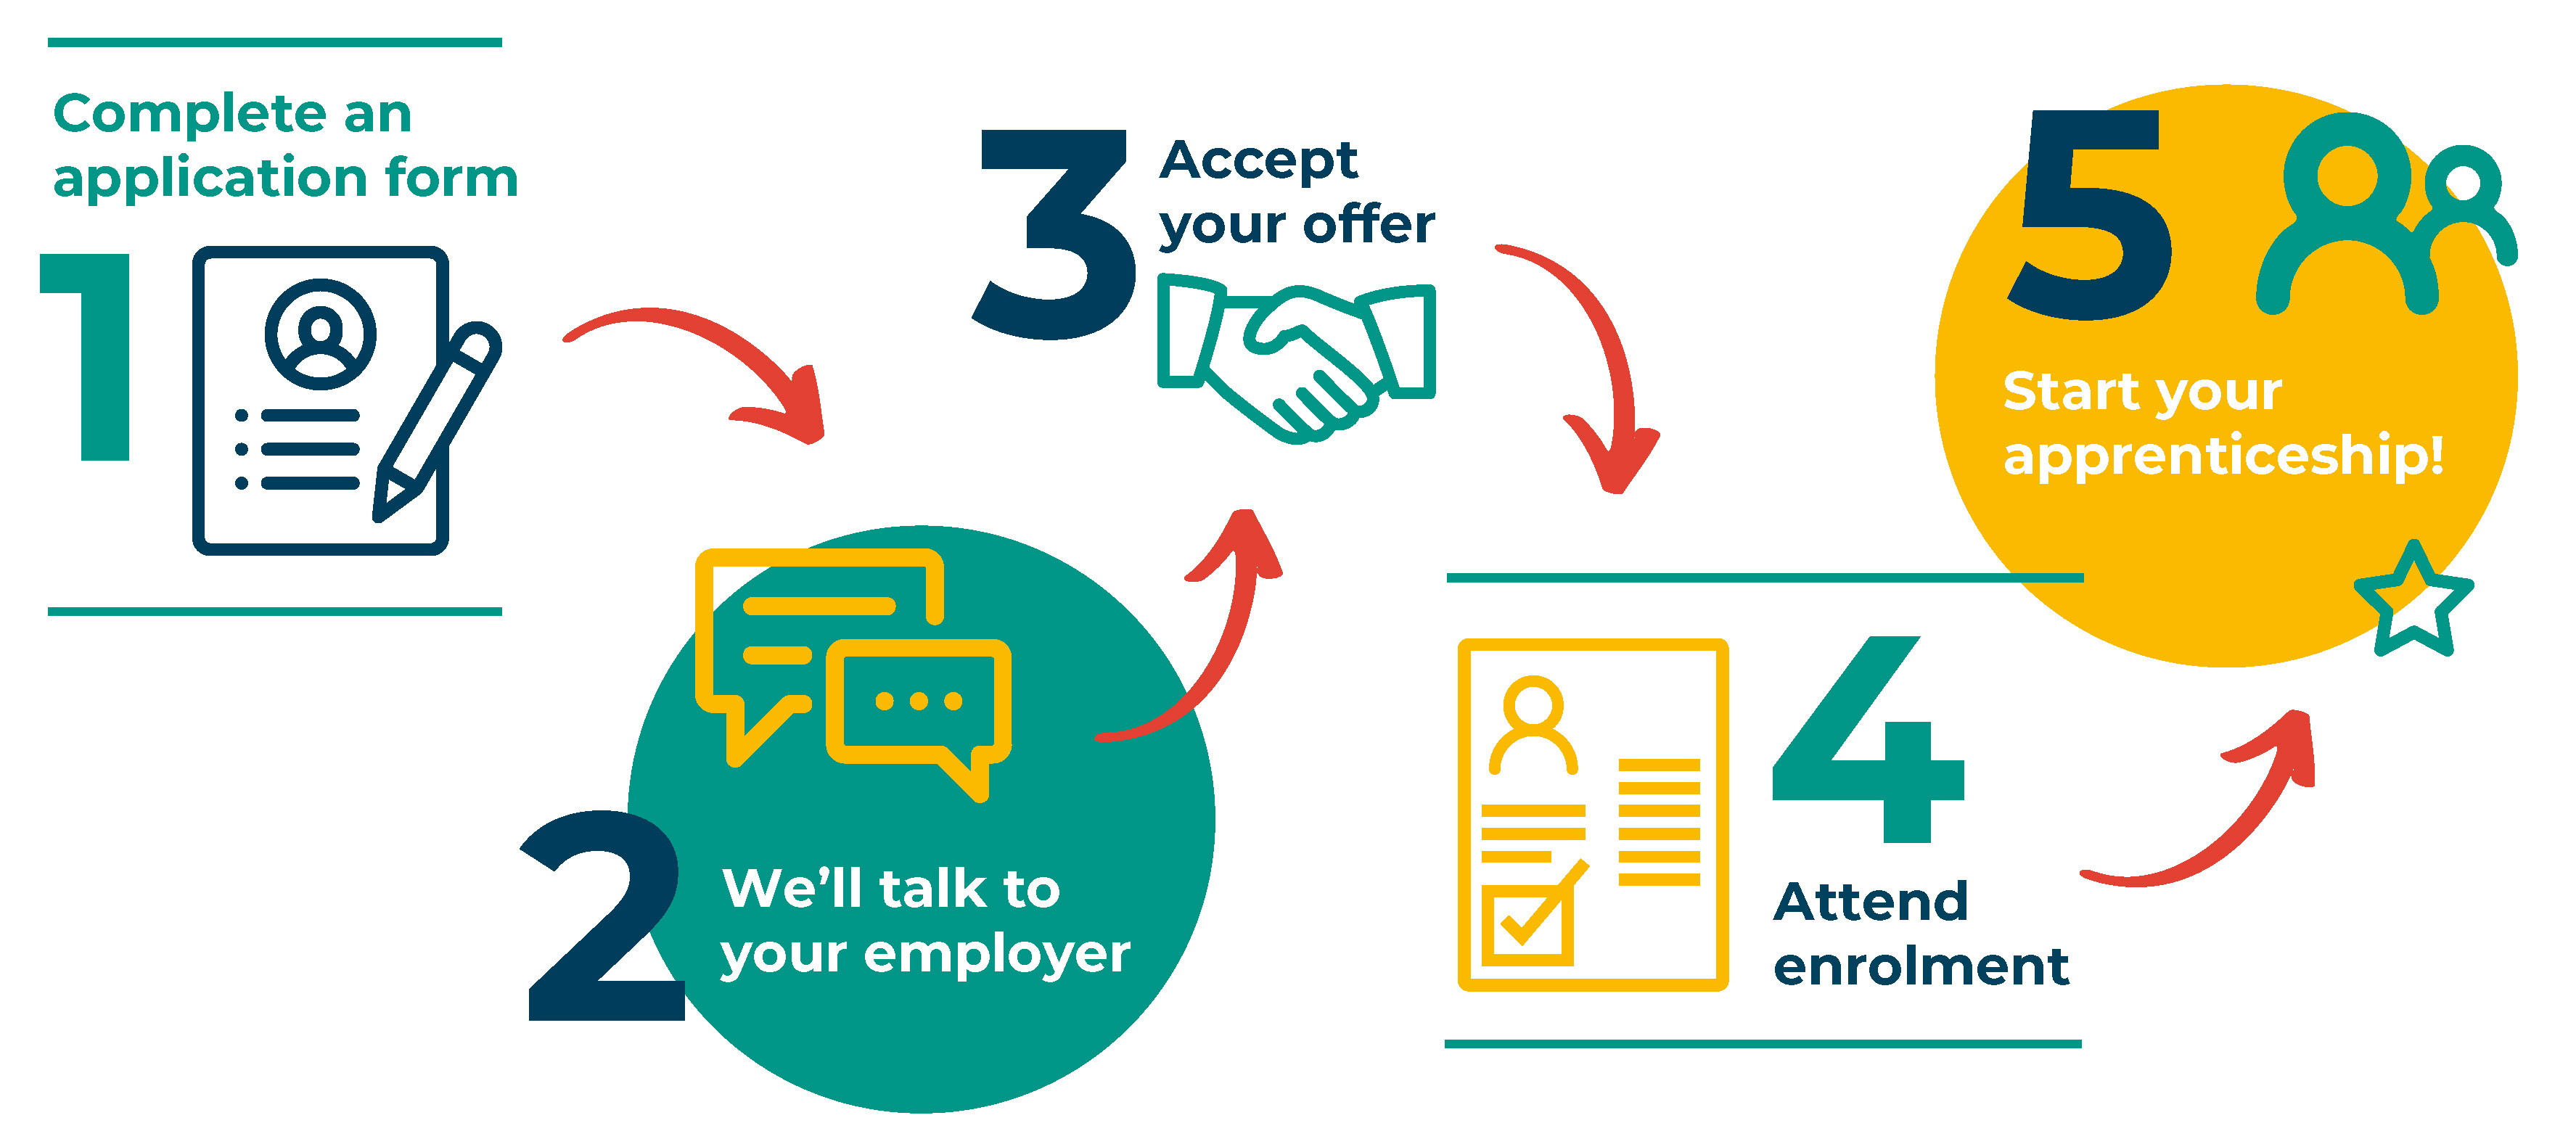 Application process icons